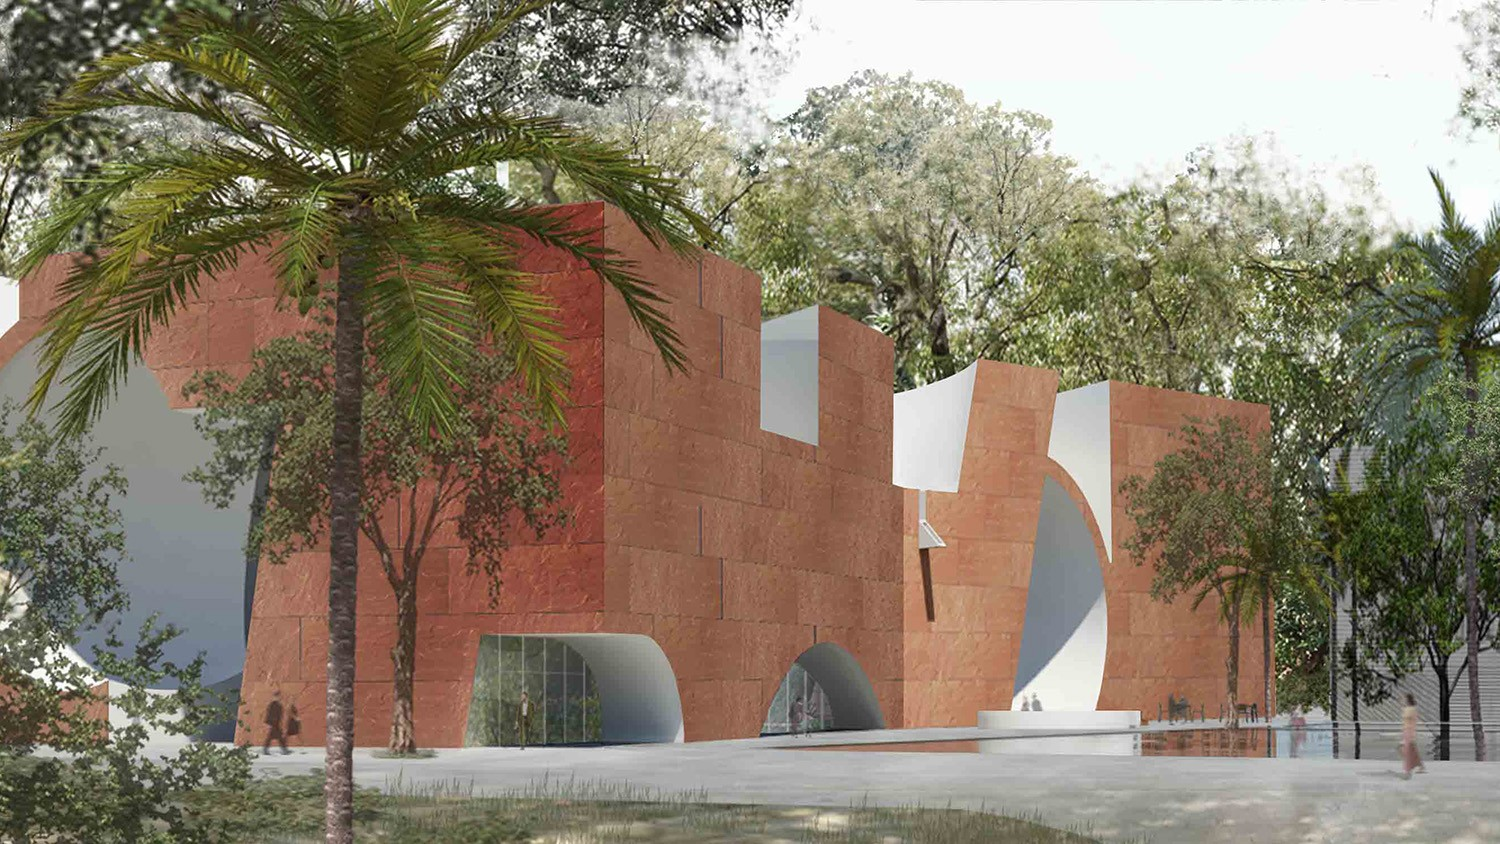 https://s3.us-east-2.amazonaws.com/steven-holl/uploads/projects/project-images/StevenHollArchitects_Mumbai_SHA_02_PAN view_extra long_WH.jpg